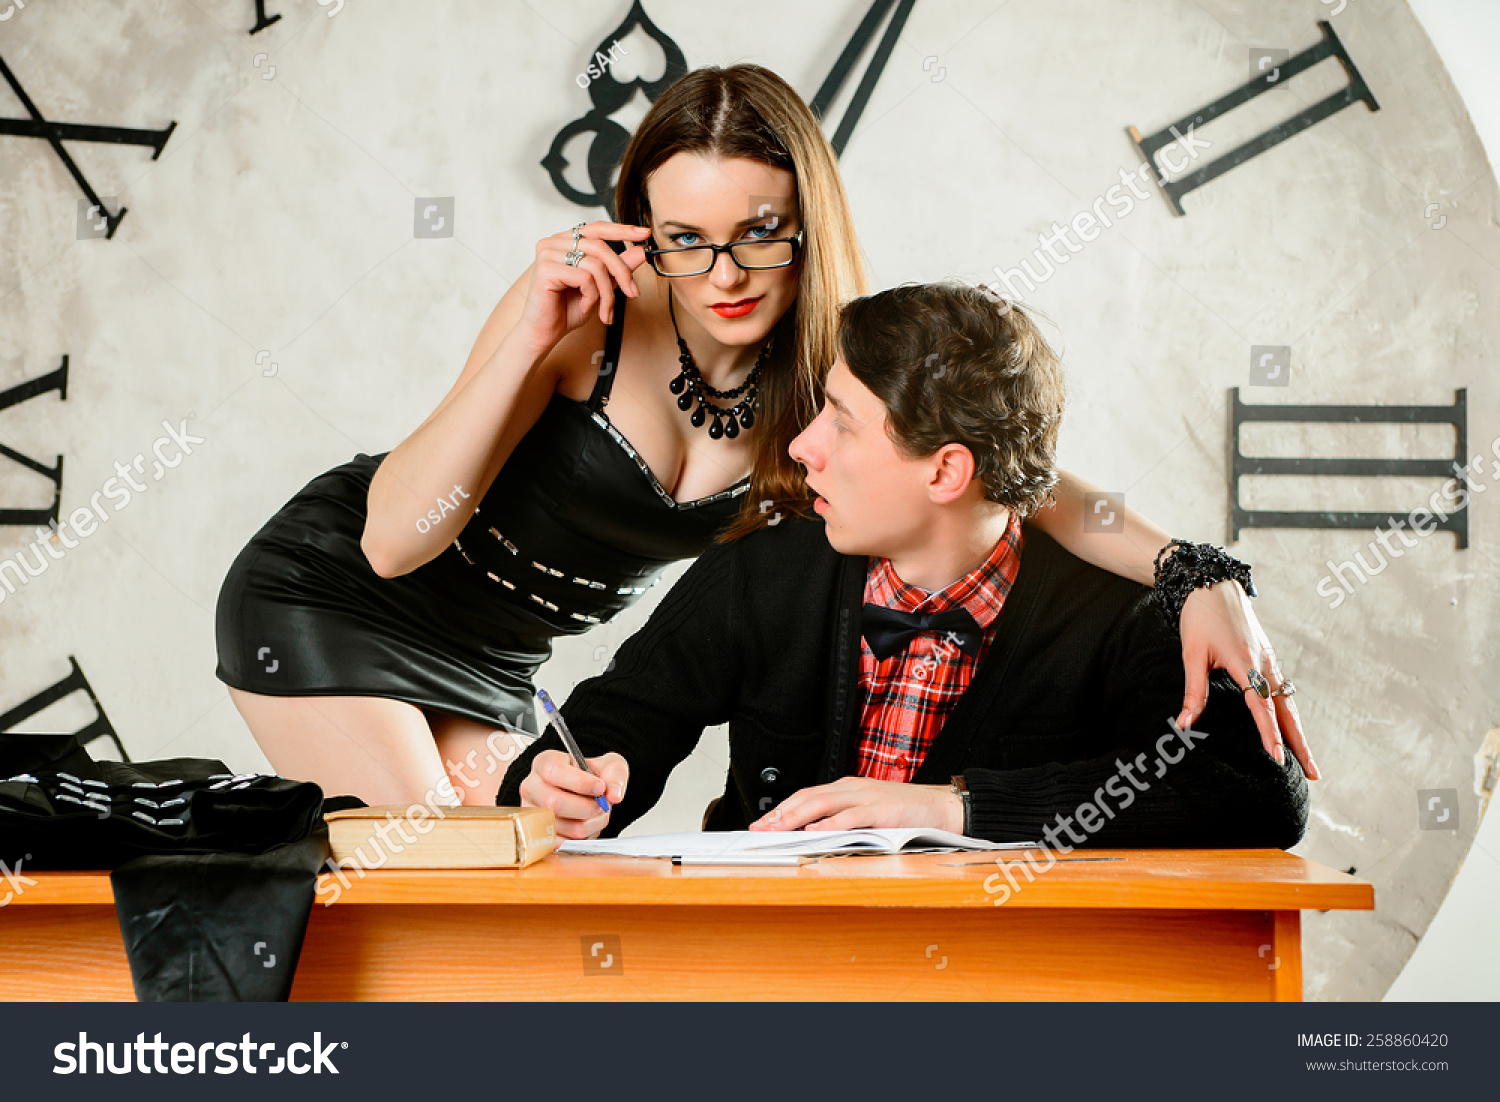 Bad Teacher Sexy Teacher Seducing Her Stock Photo -1089